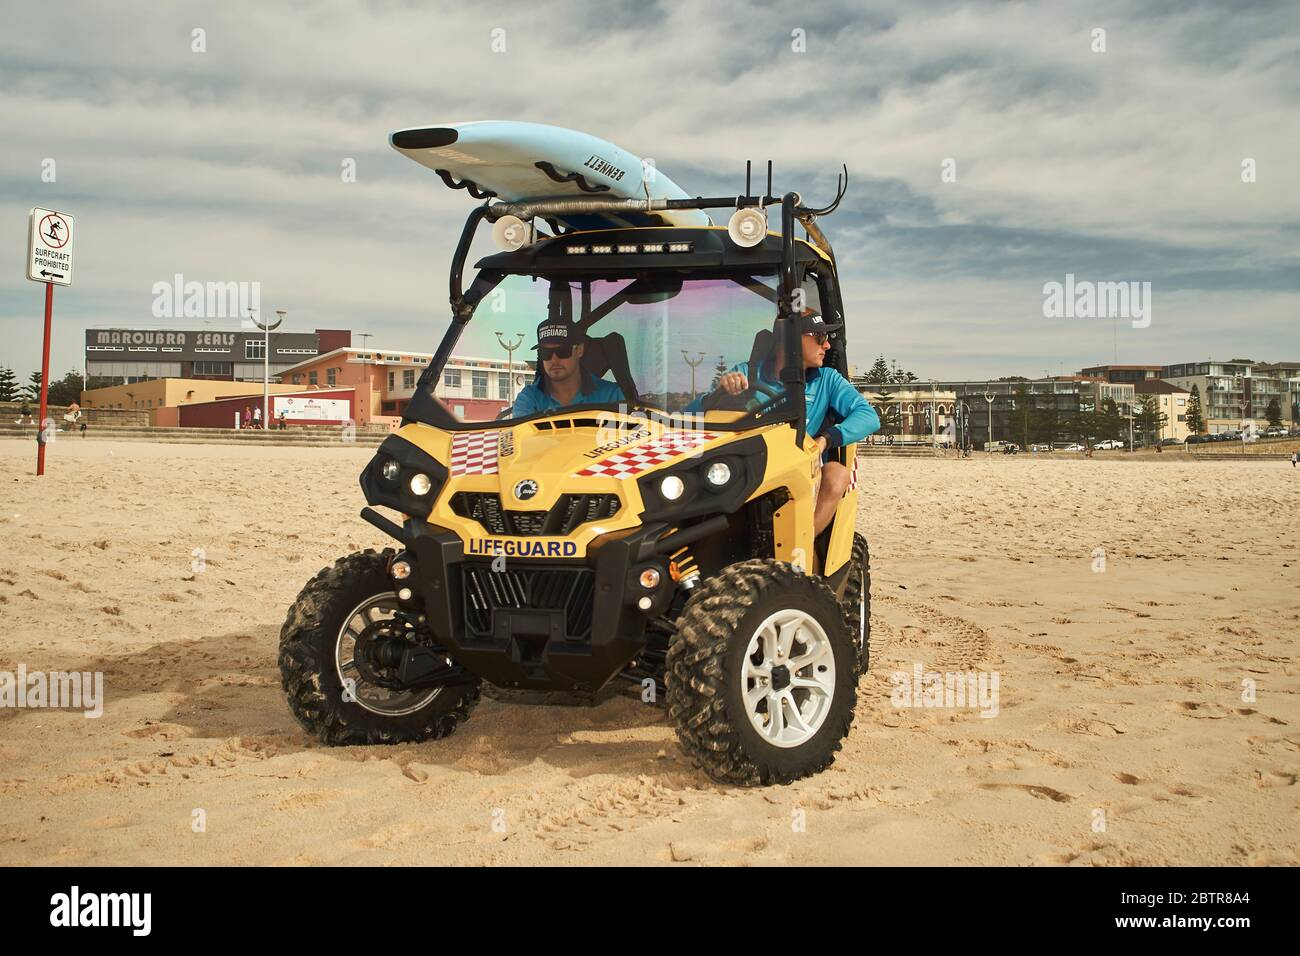 Lifeguard service at the Maroubra beach in Sydney, Australia Stock Photo